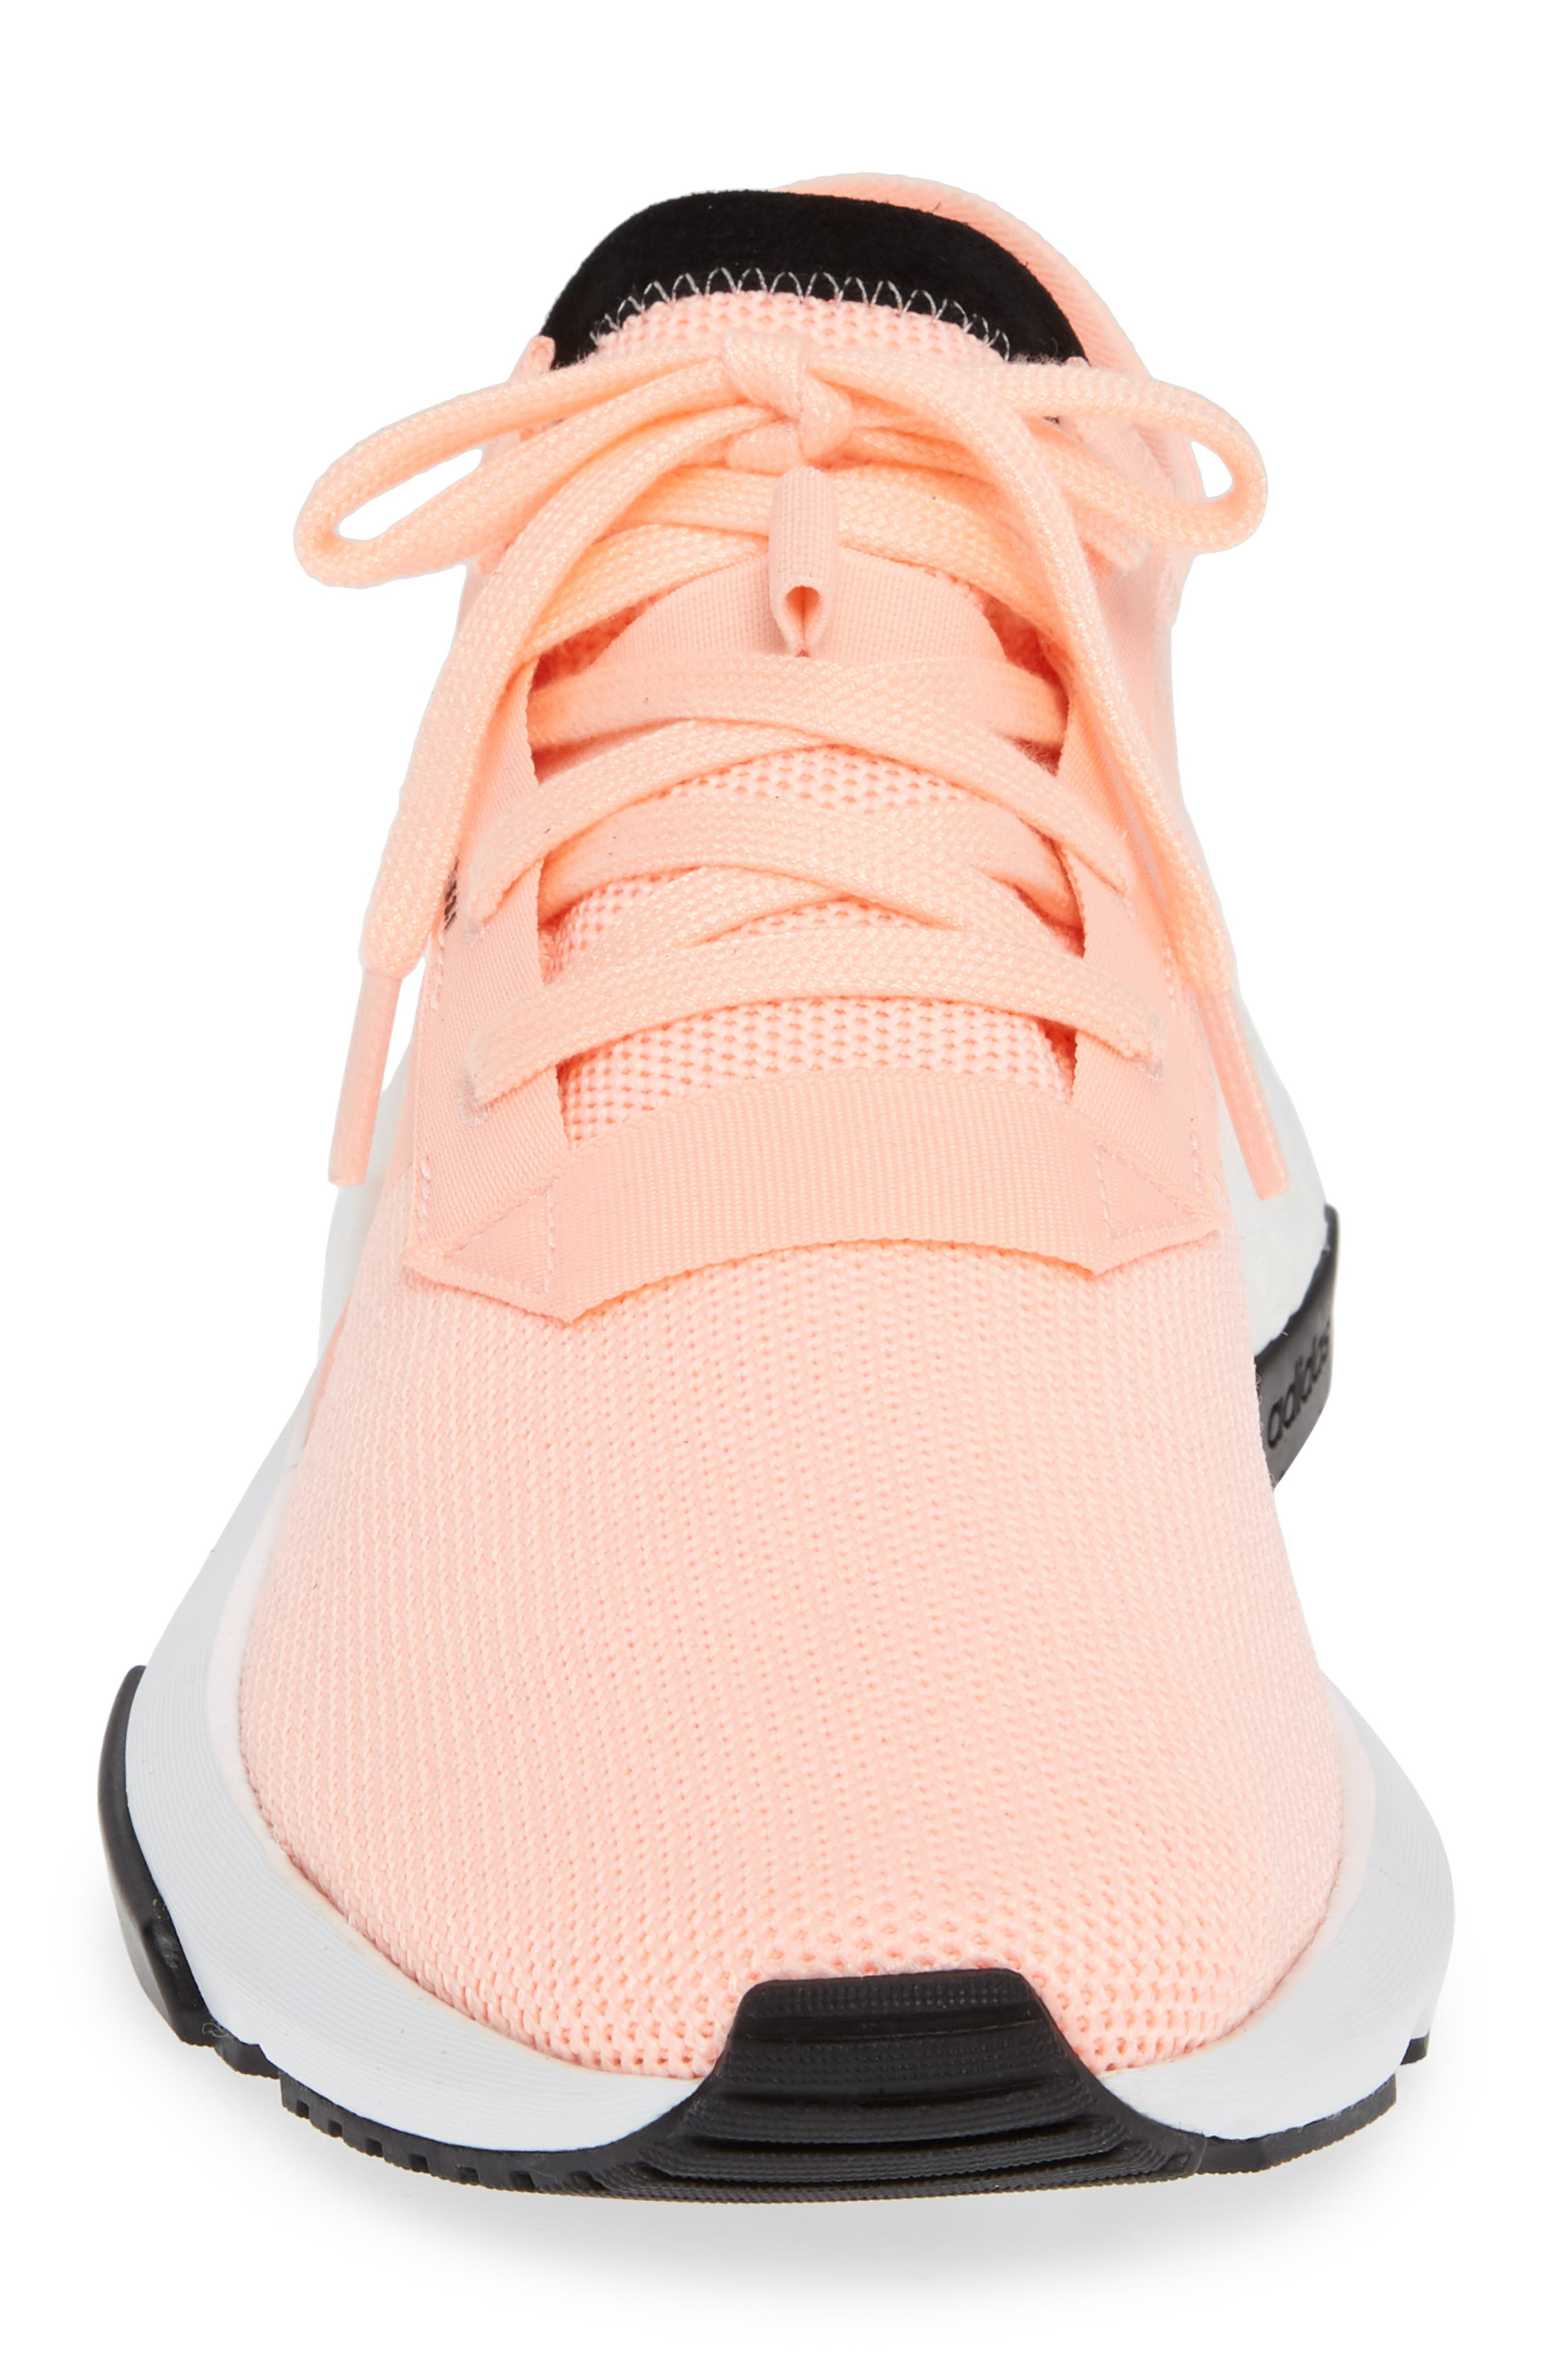 P.O.D.S3.1 Sneaker,                             Alternate thumbnail 4, color,                             CLEAR ORANGE/ BLACK